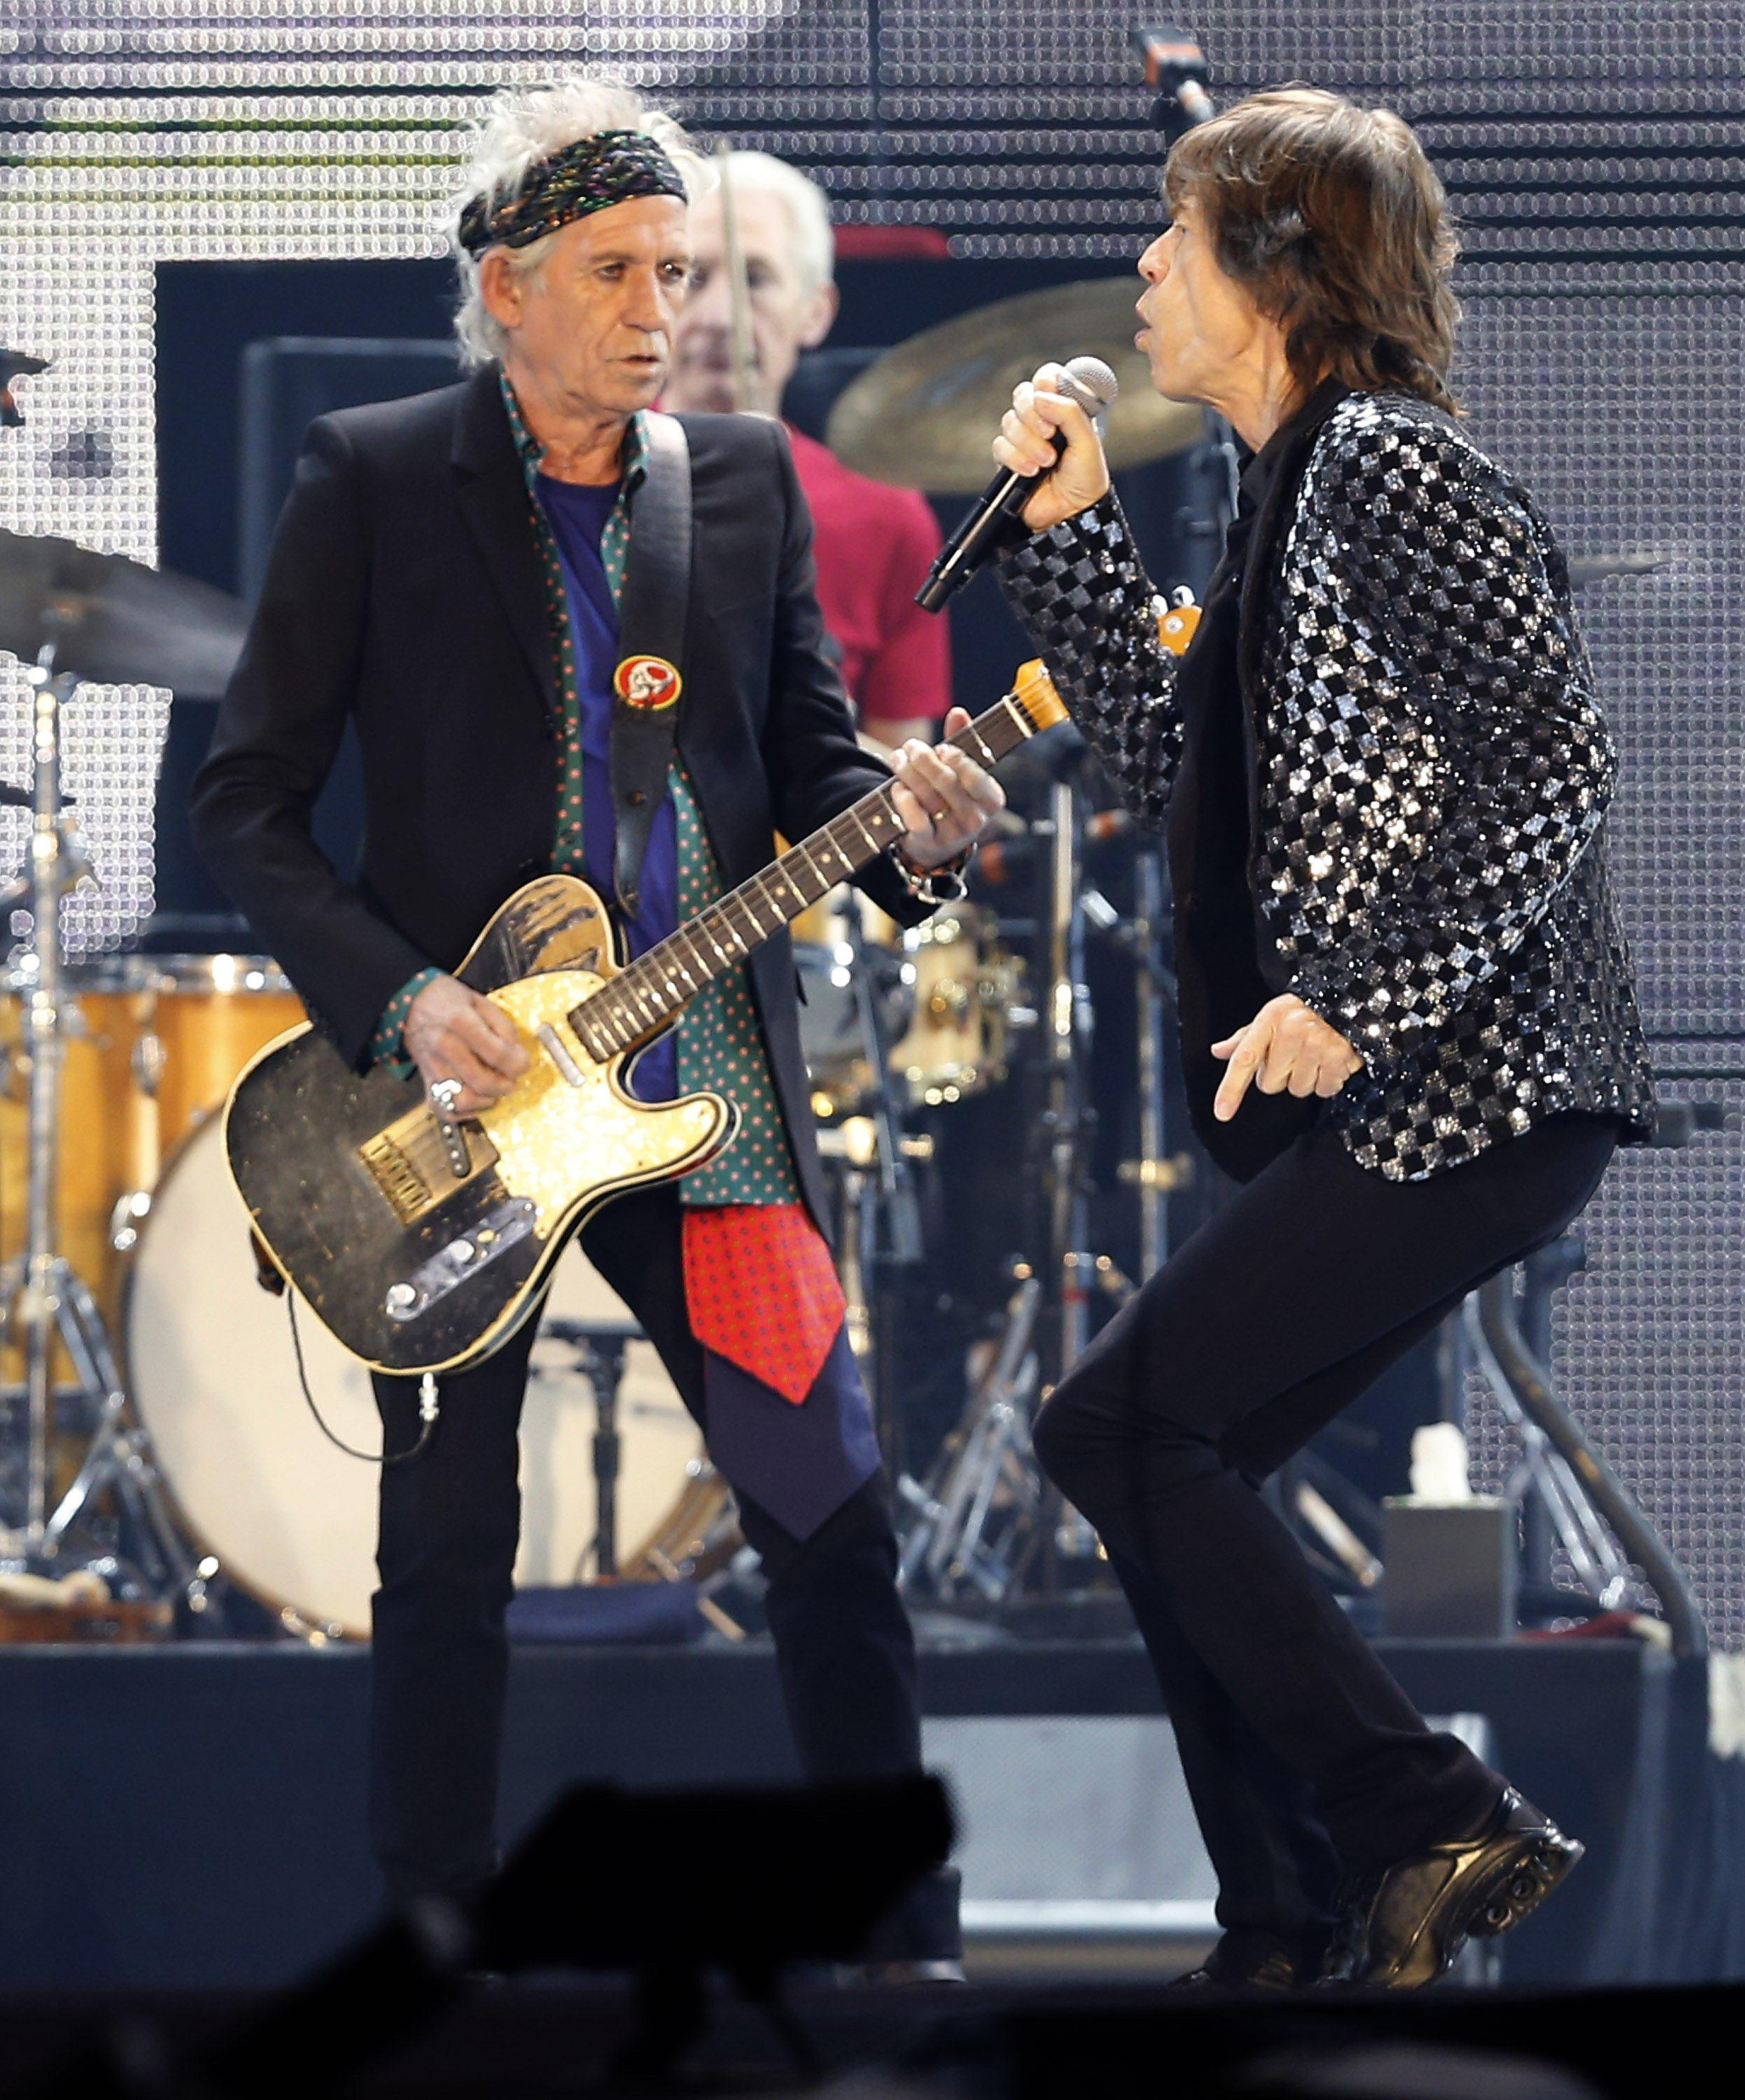 Image: Mick Jagger, Keith Richards